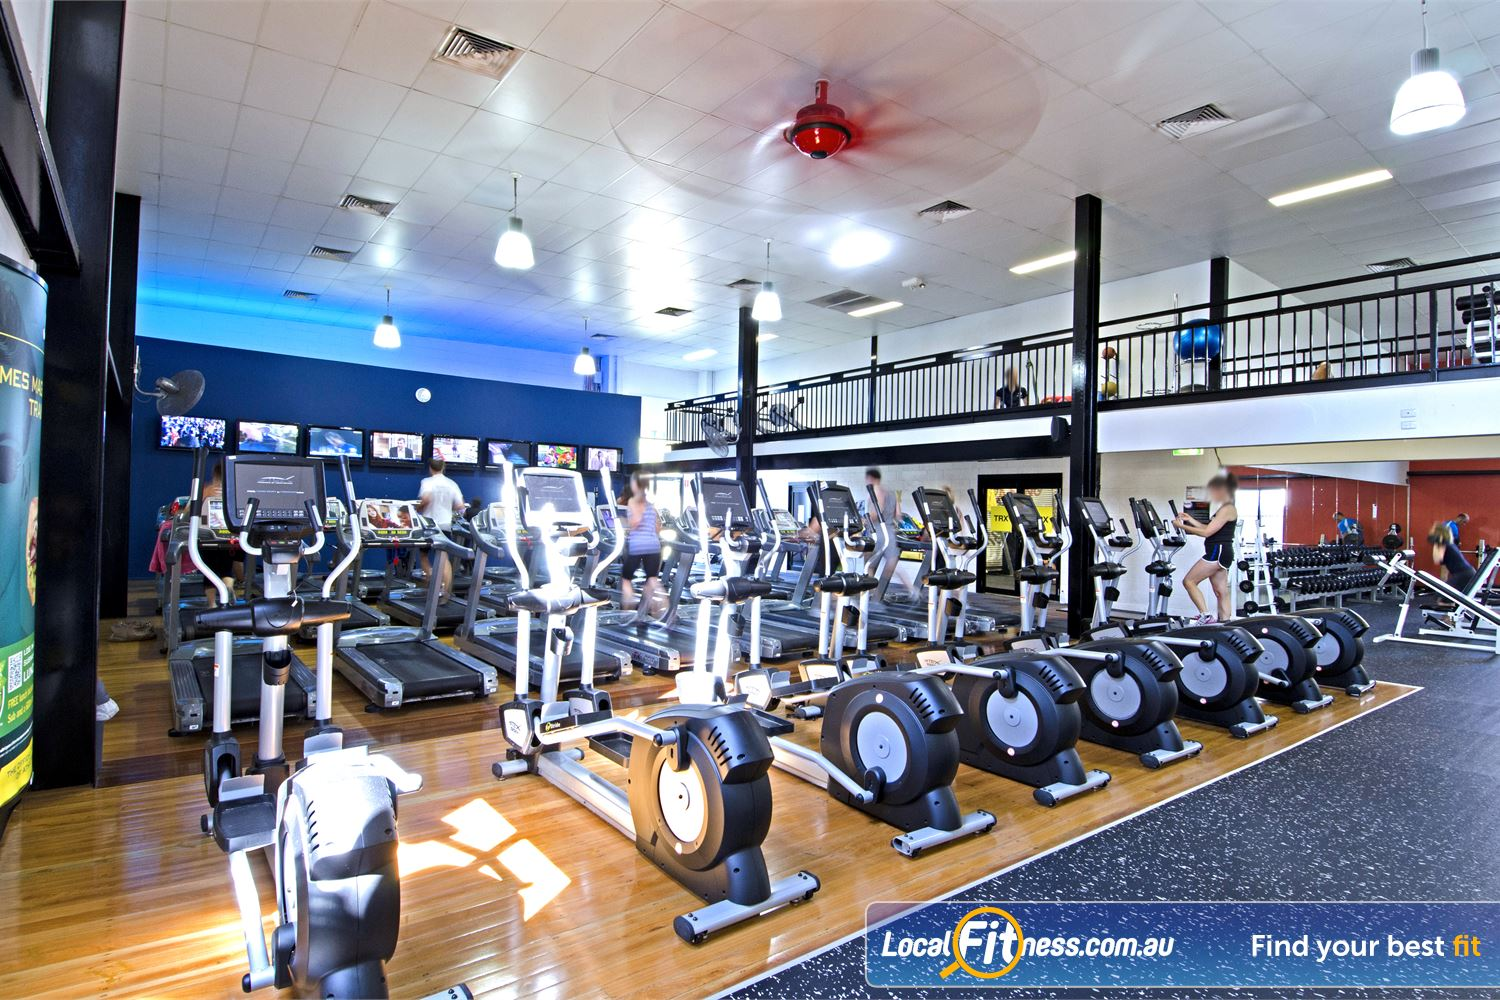 Goodlife Health Clubs Near Sherwood Tune into your favorite shows on your personalised LCD screen or cardio theatre.